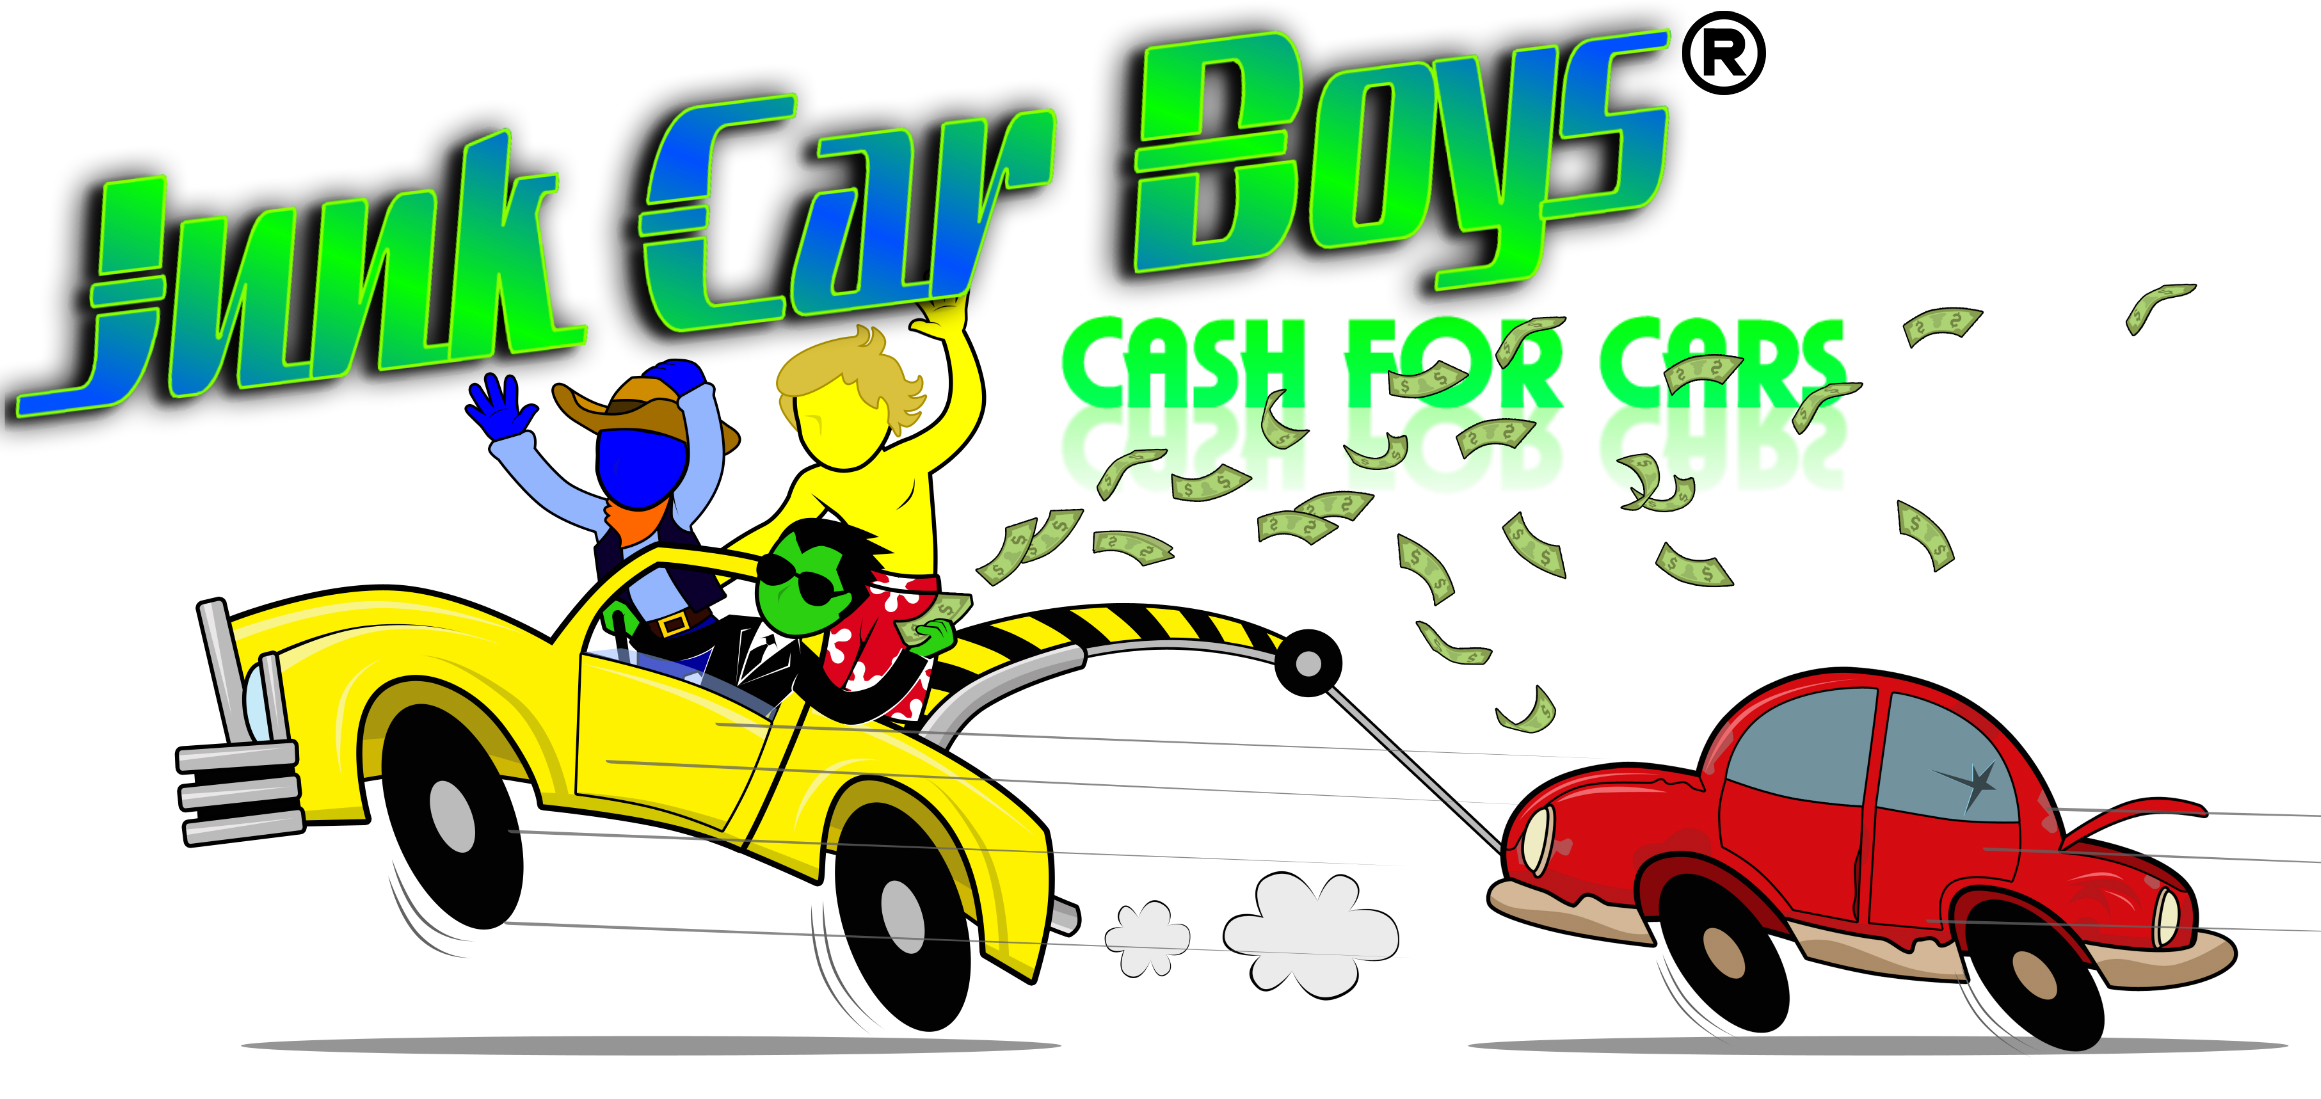 About Us | Cash for Cars Cleveland